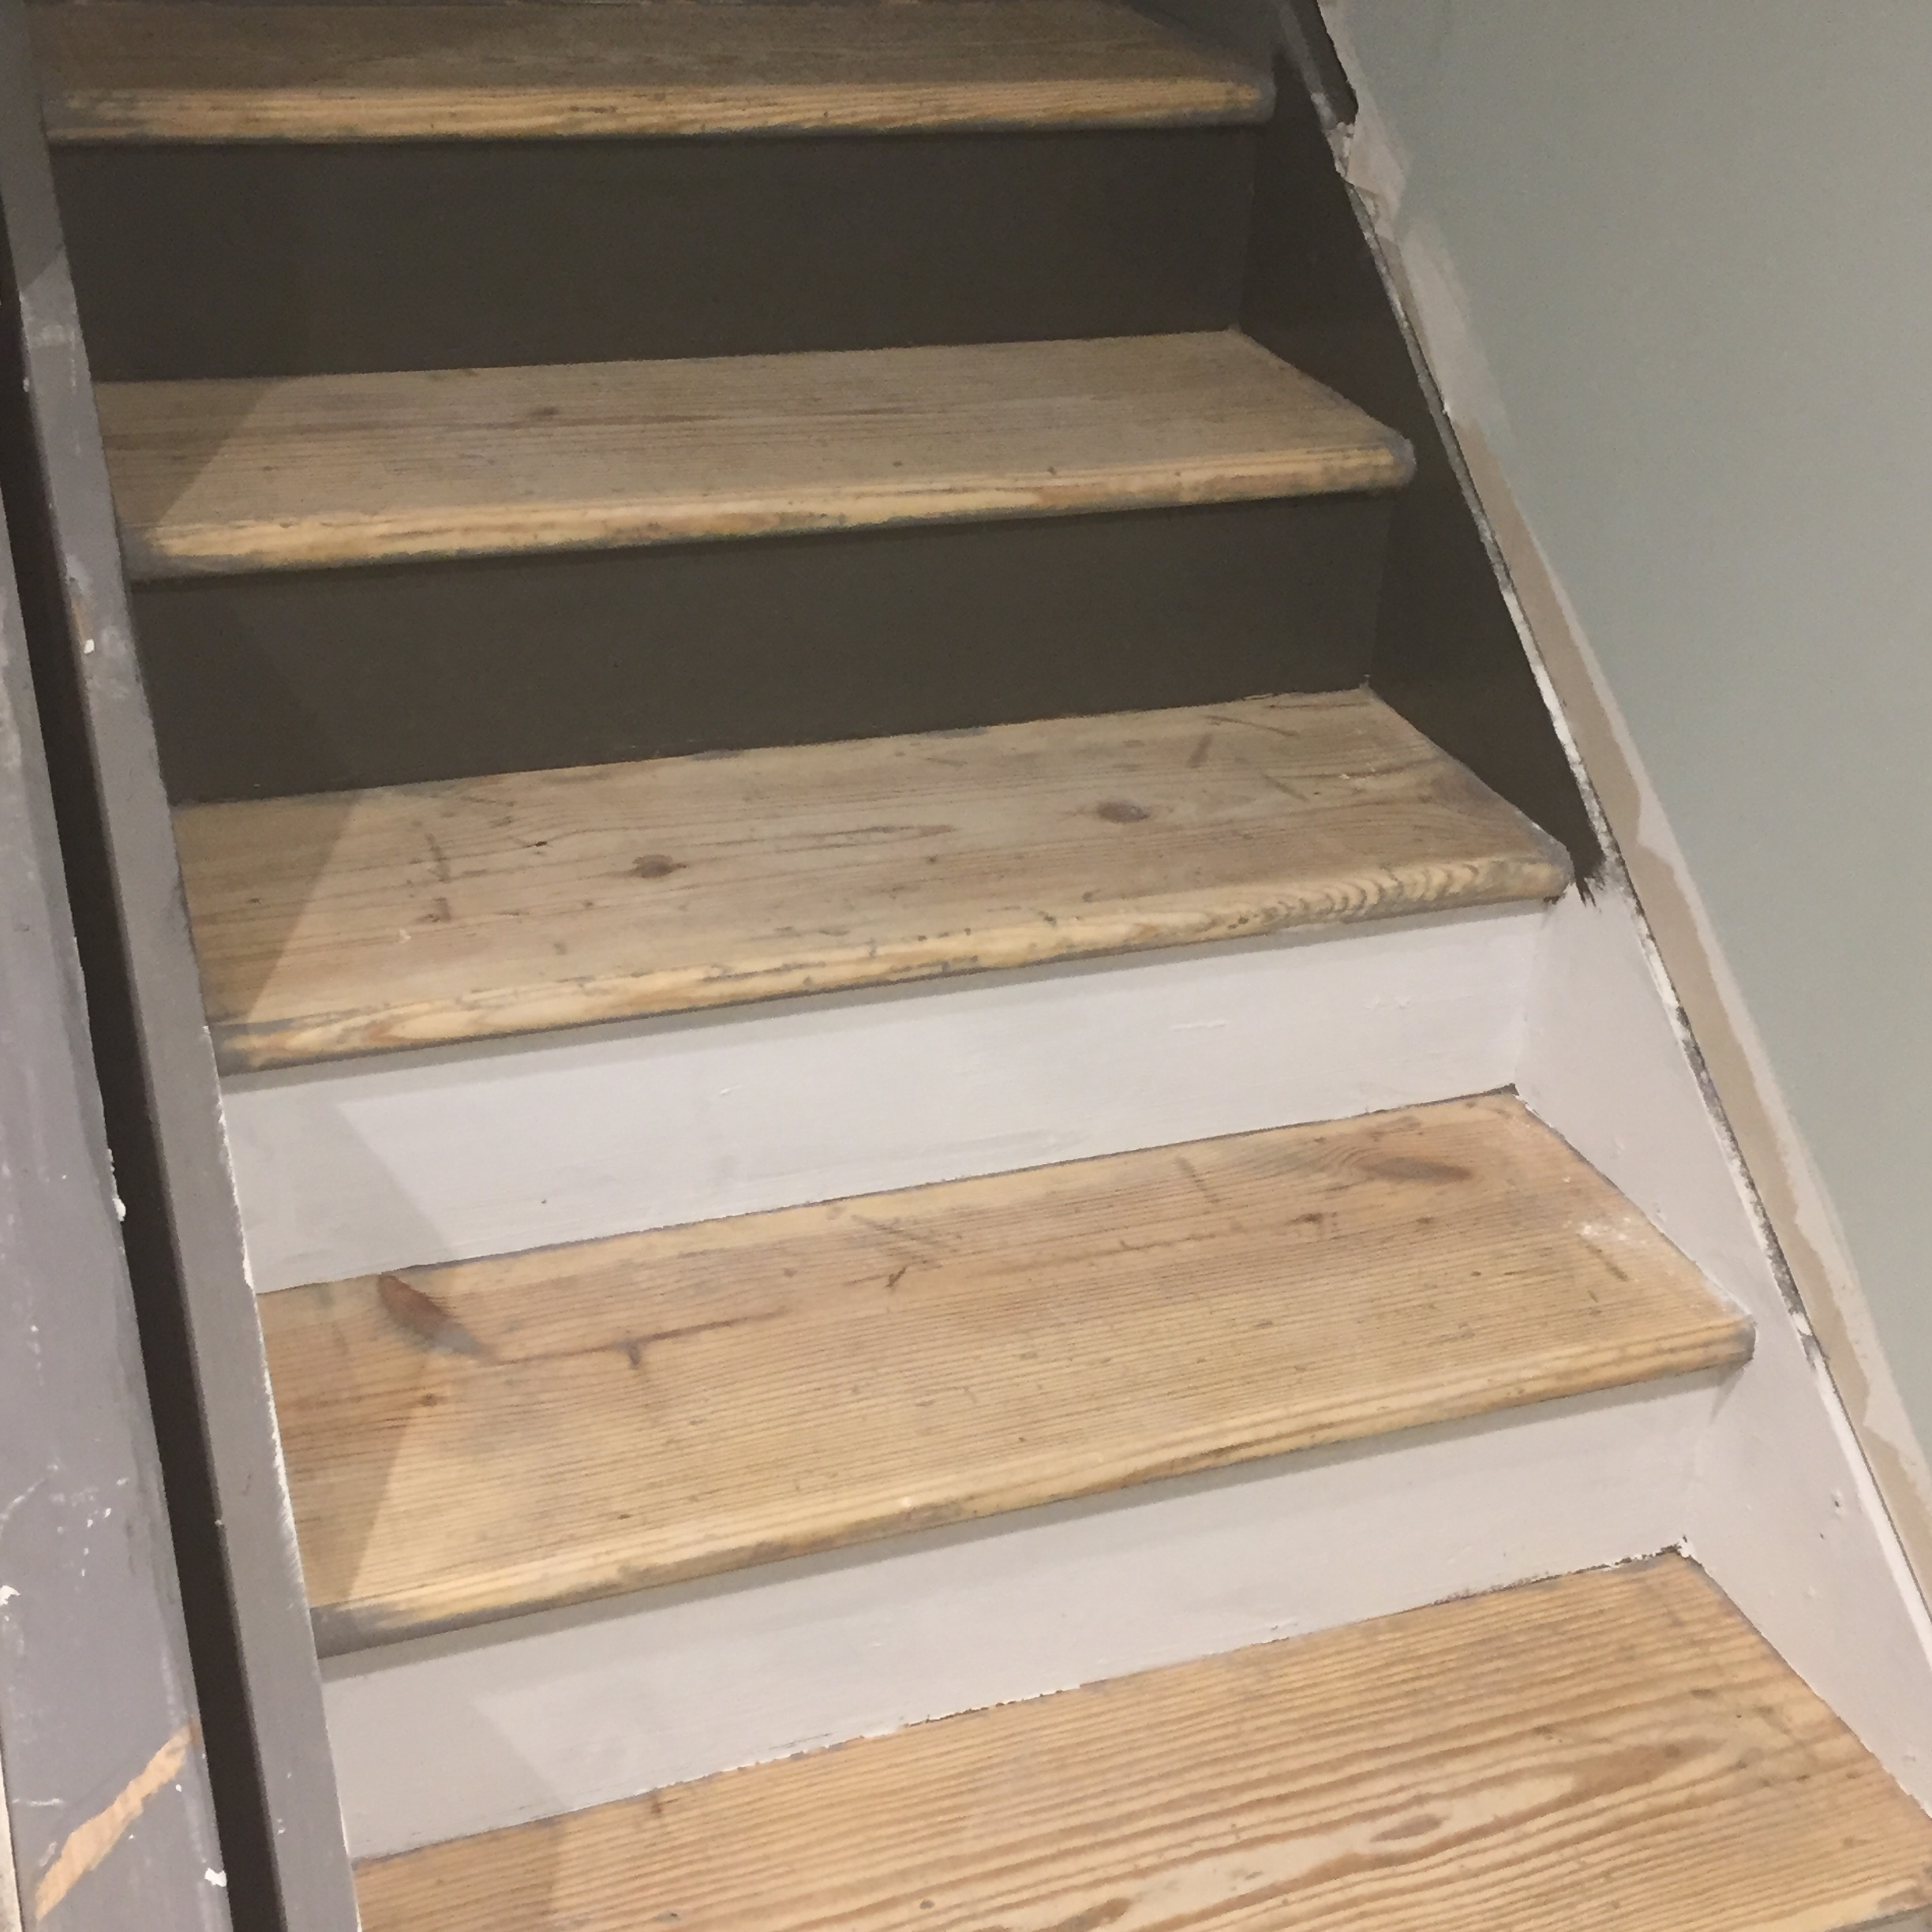 Staircase Remodel Diy Basement Stair Transformation — Revival   Refinishing Builder Grade Stairs   Diy   Basement Stairs   Staircase Makeover   Flooring   Carpeted Stairs